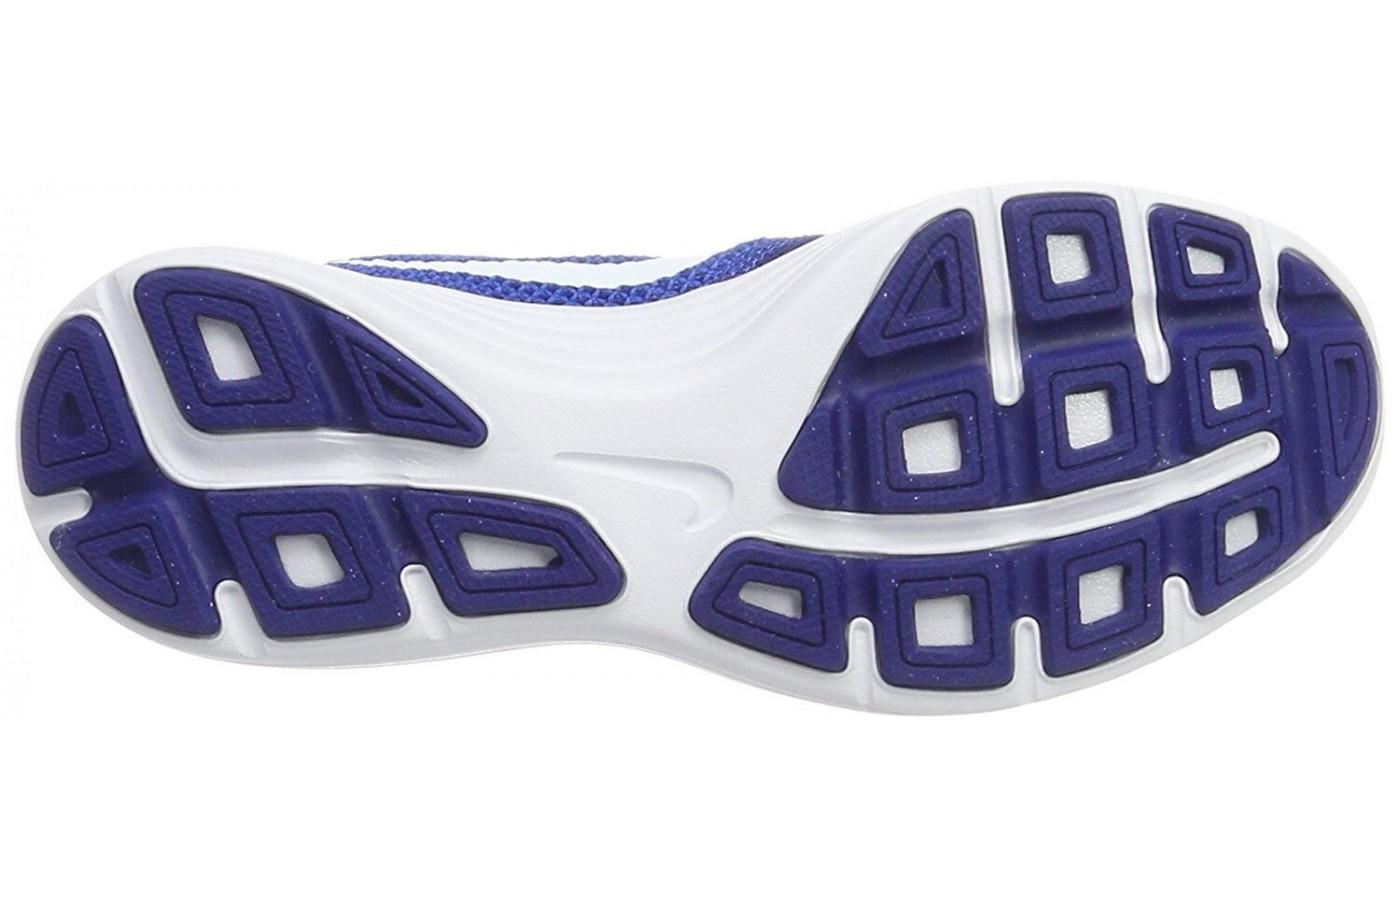 The Nike Revolution 3 has a rubber outsole with Flex Grooves